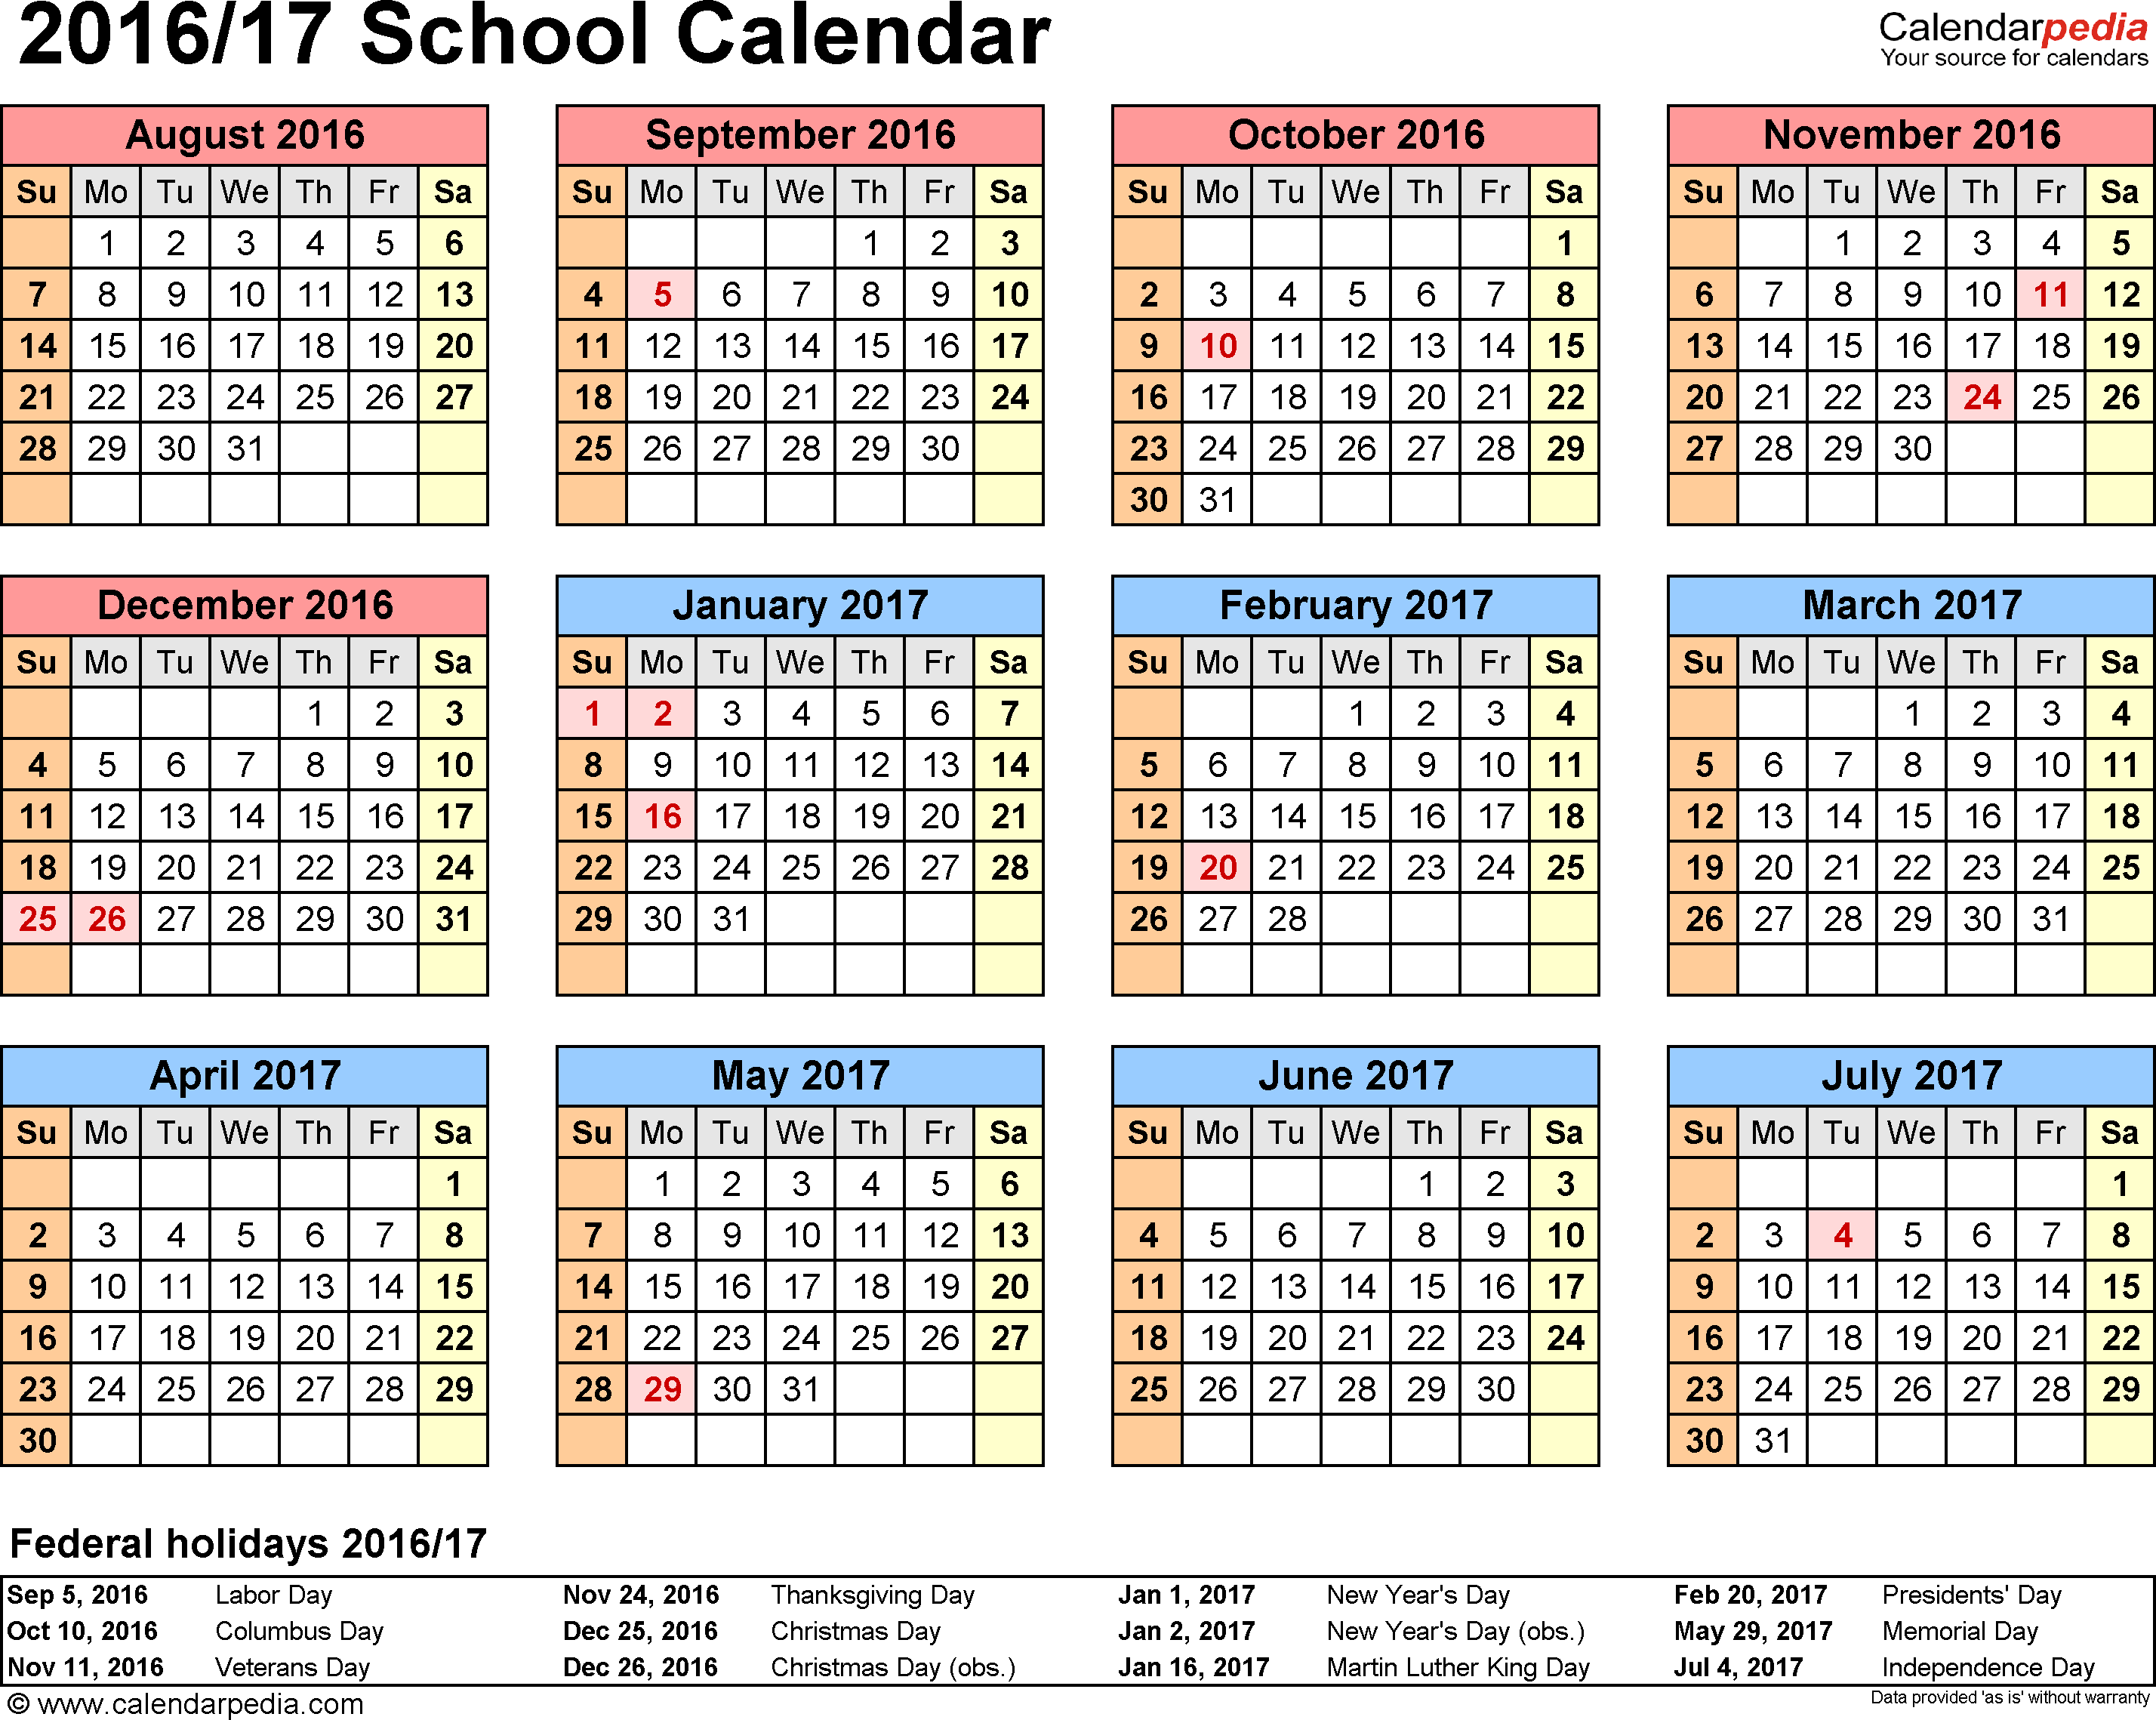 year at a glance template for teachers - template 4 school calendar 2016 17 for word landscape